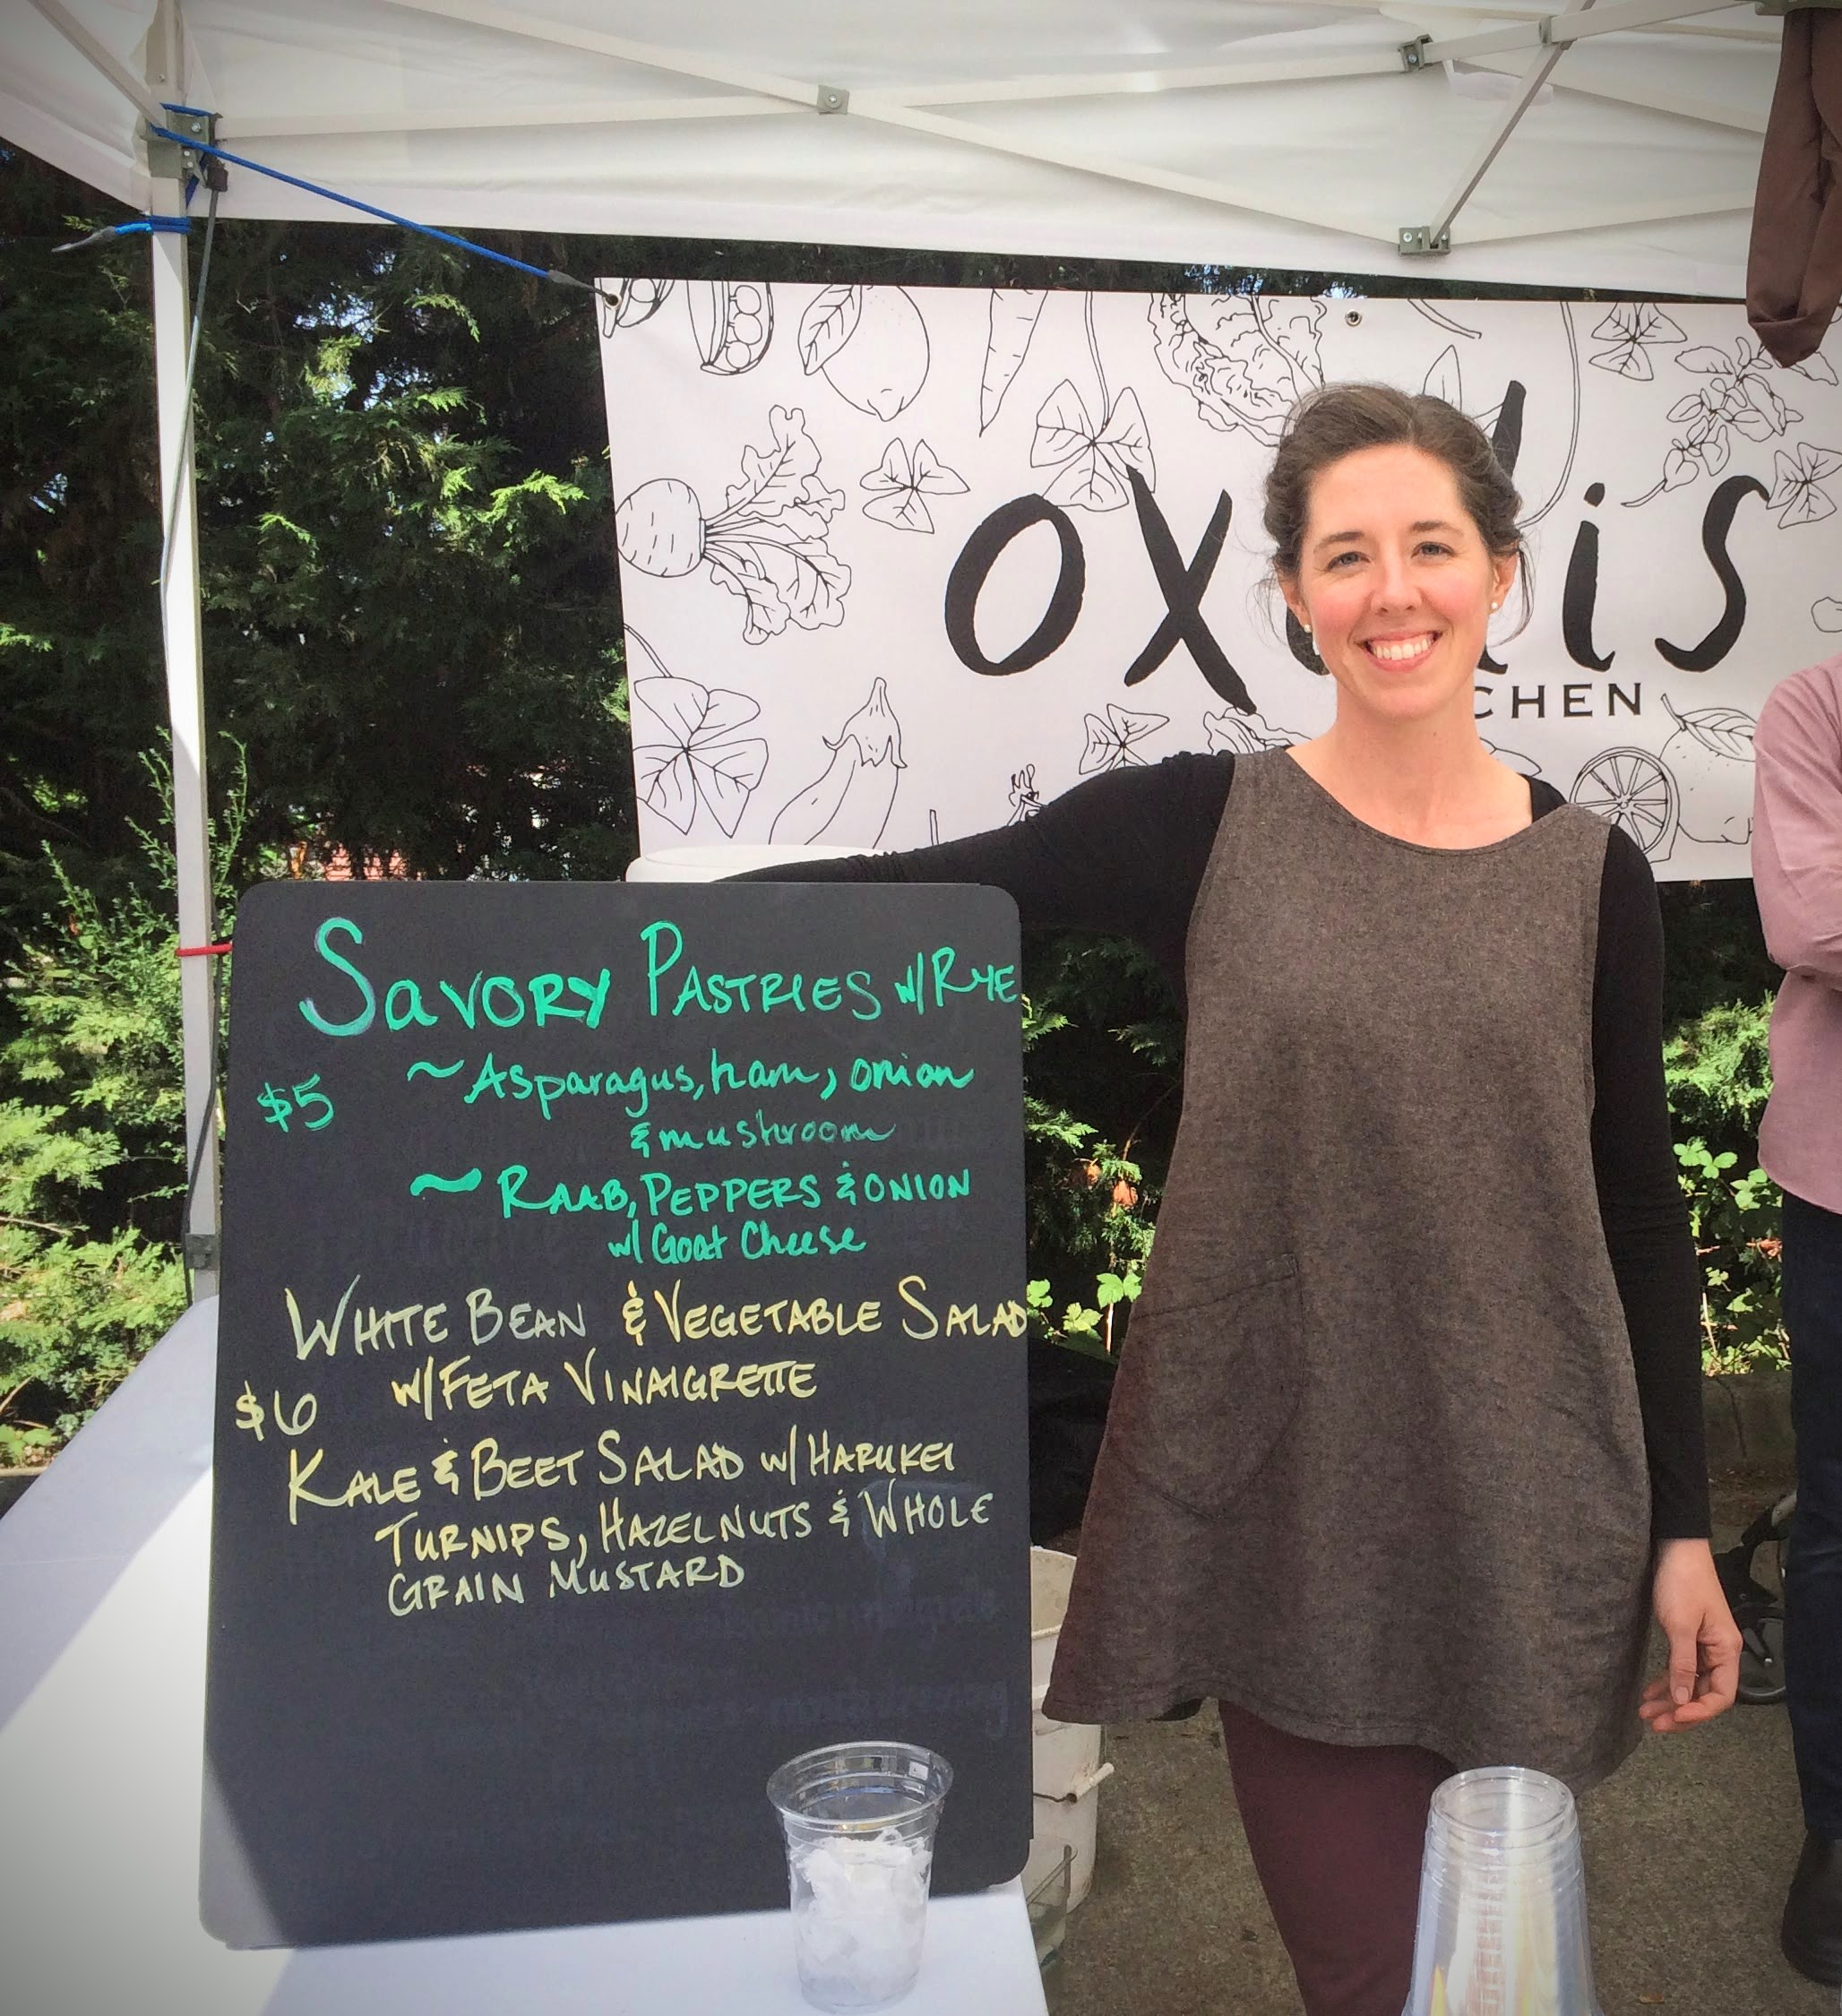 Oxalis Kitchen's first day at the market with chef Darice Grass getting her menu board all set.